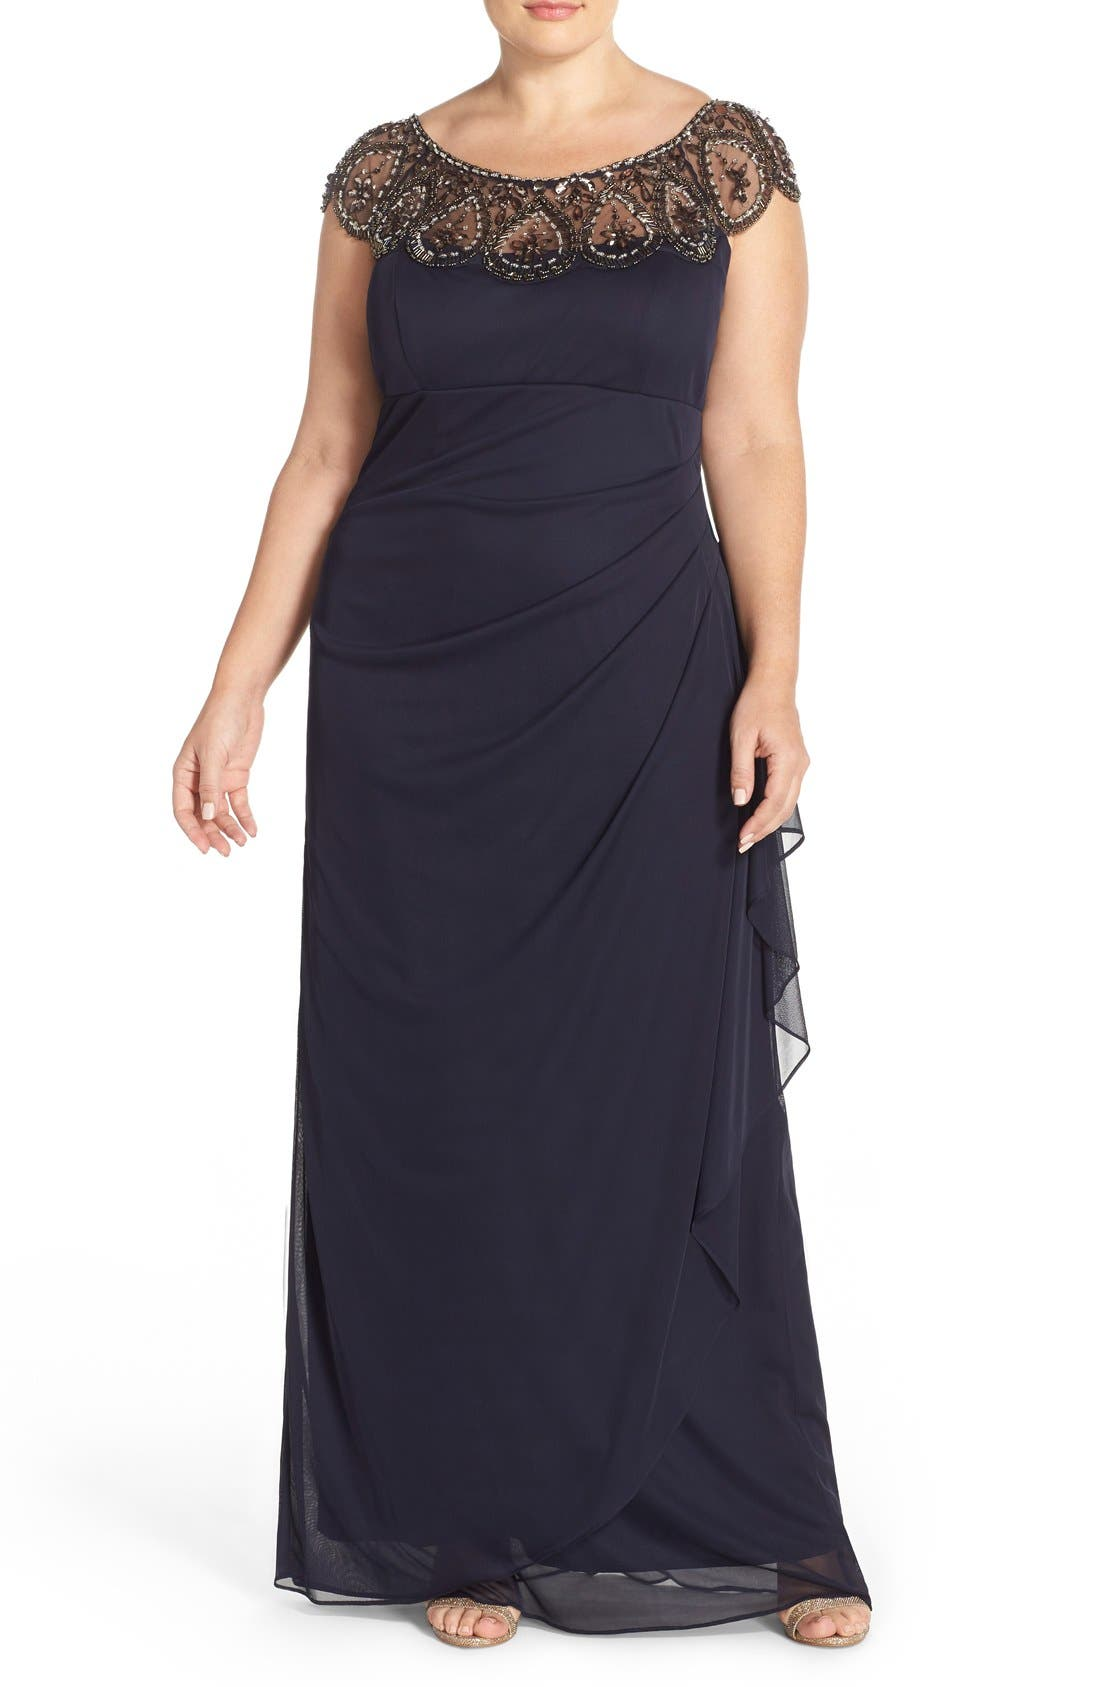 Alternate Image 1 Selected - Xscape Beaded Neck Empire Gown (Plus Size)